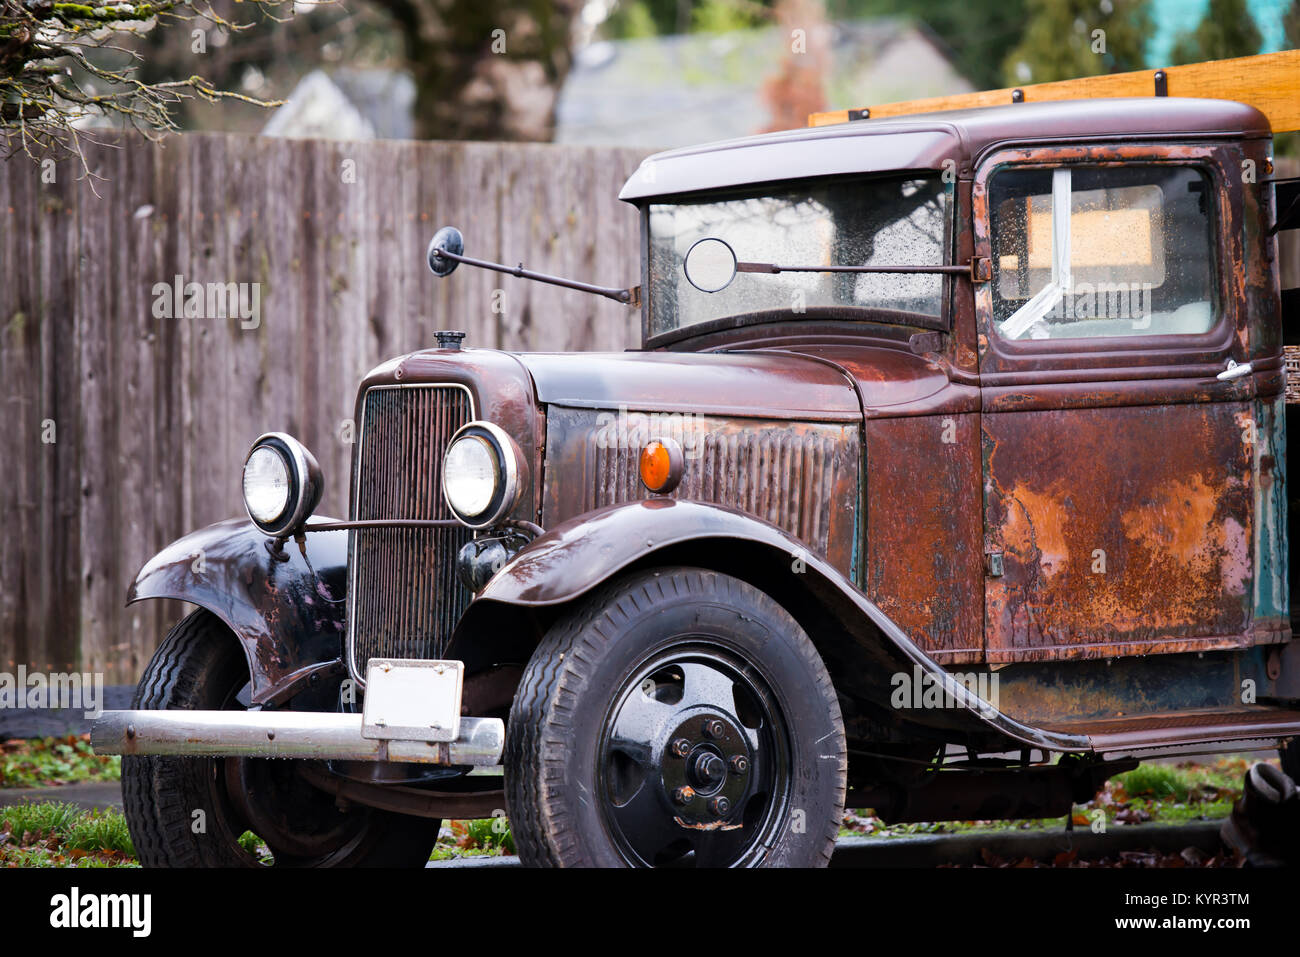 An old rarity rusty truck in working condition with a vintage design stands on the street under a fence in rainy Stock Photo